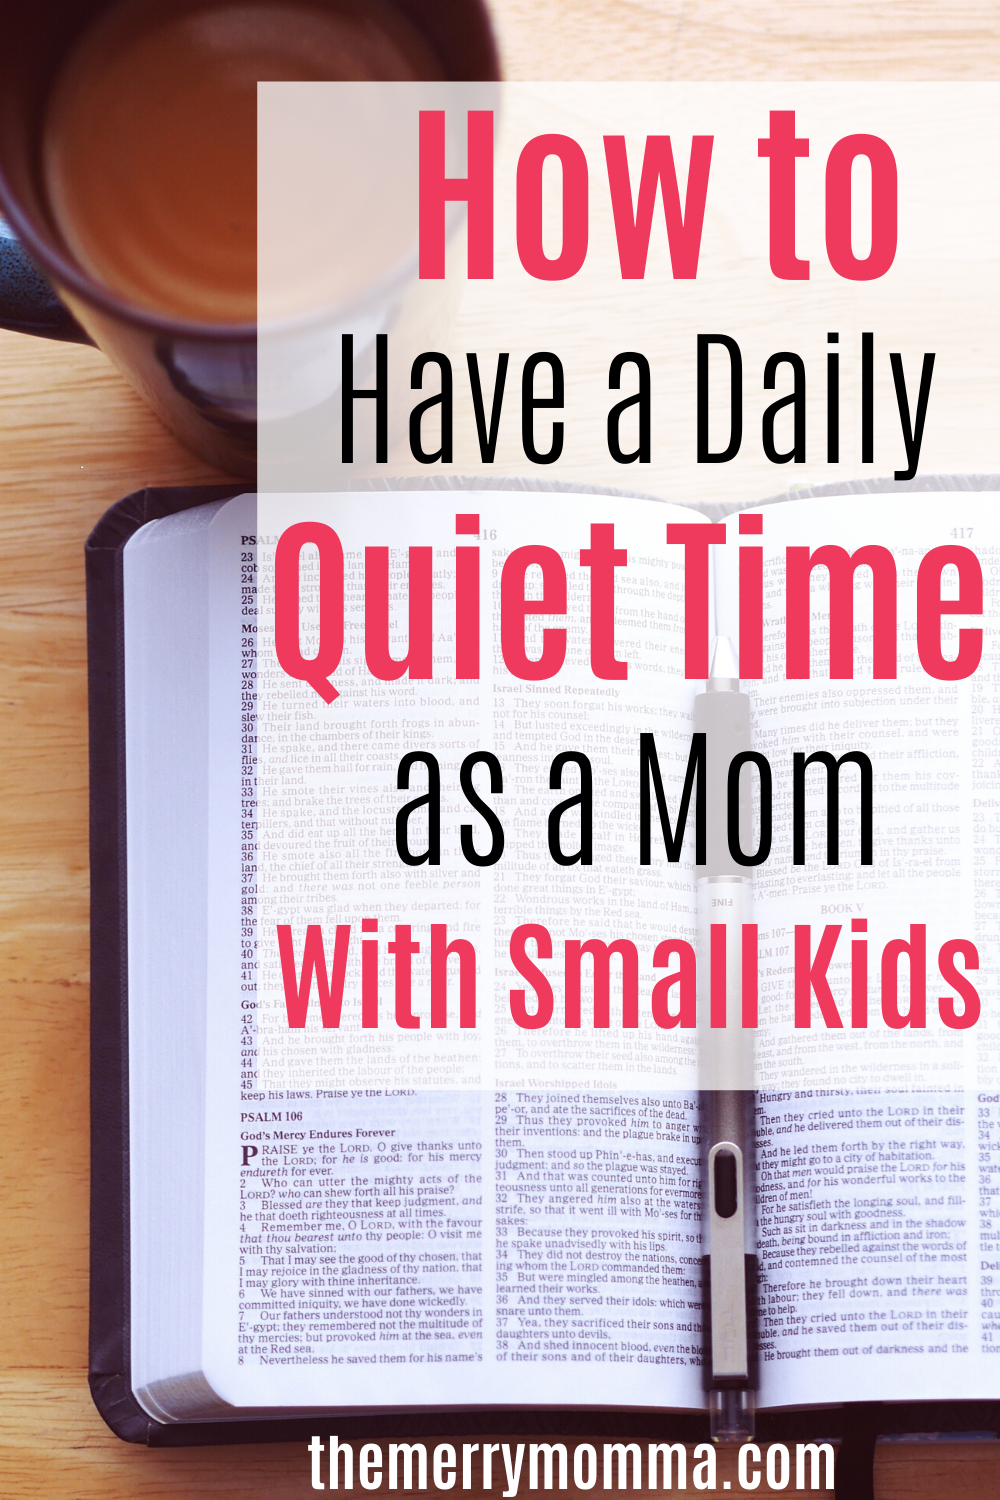 How to Have a Daily Quiet Time as a Mom With Small Kids